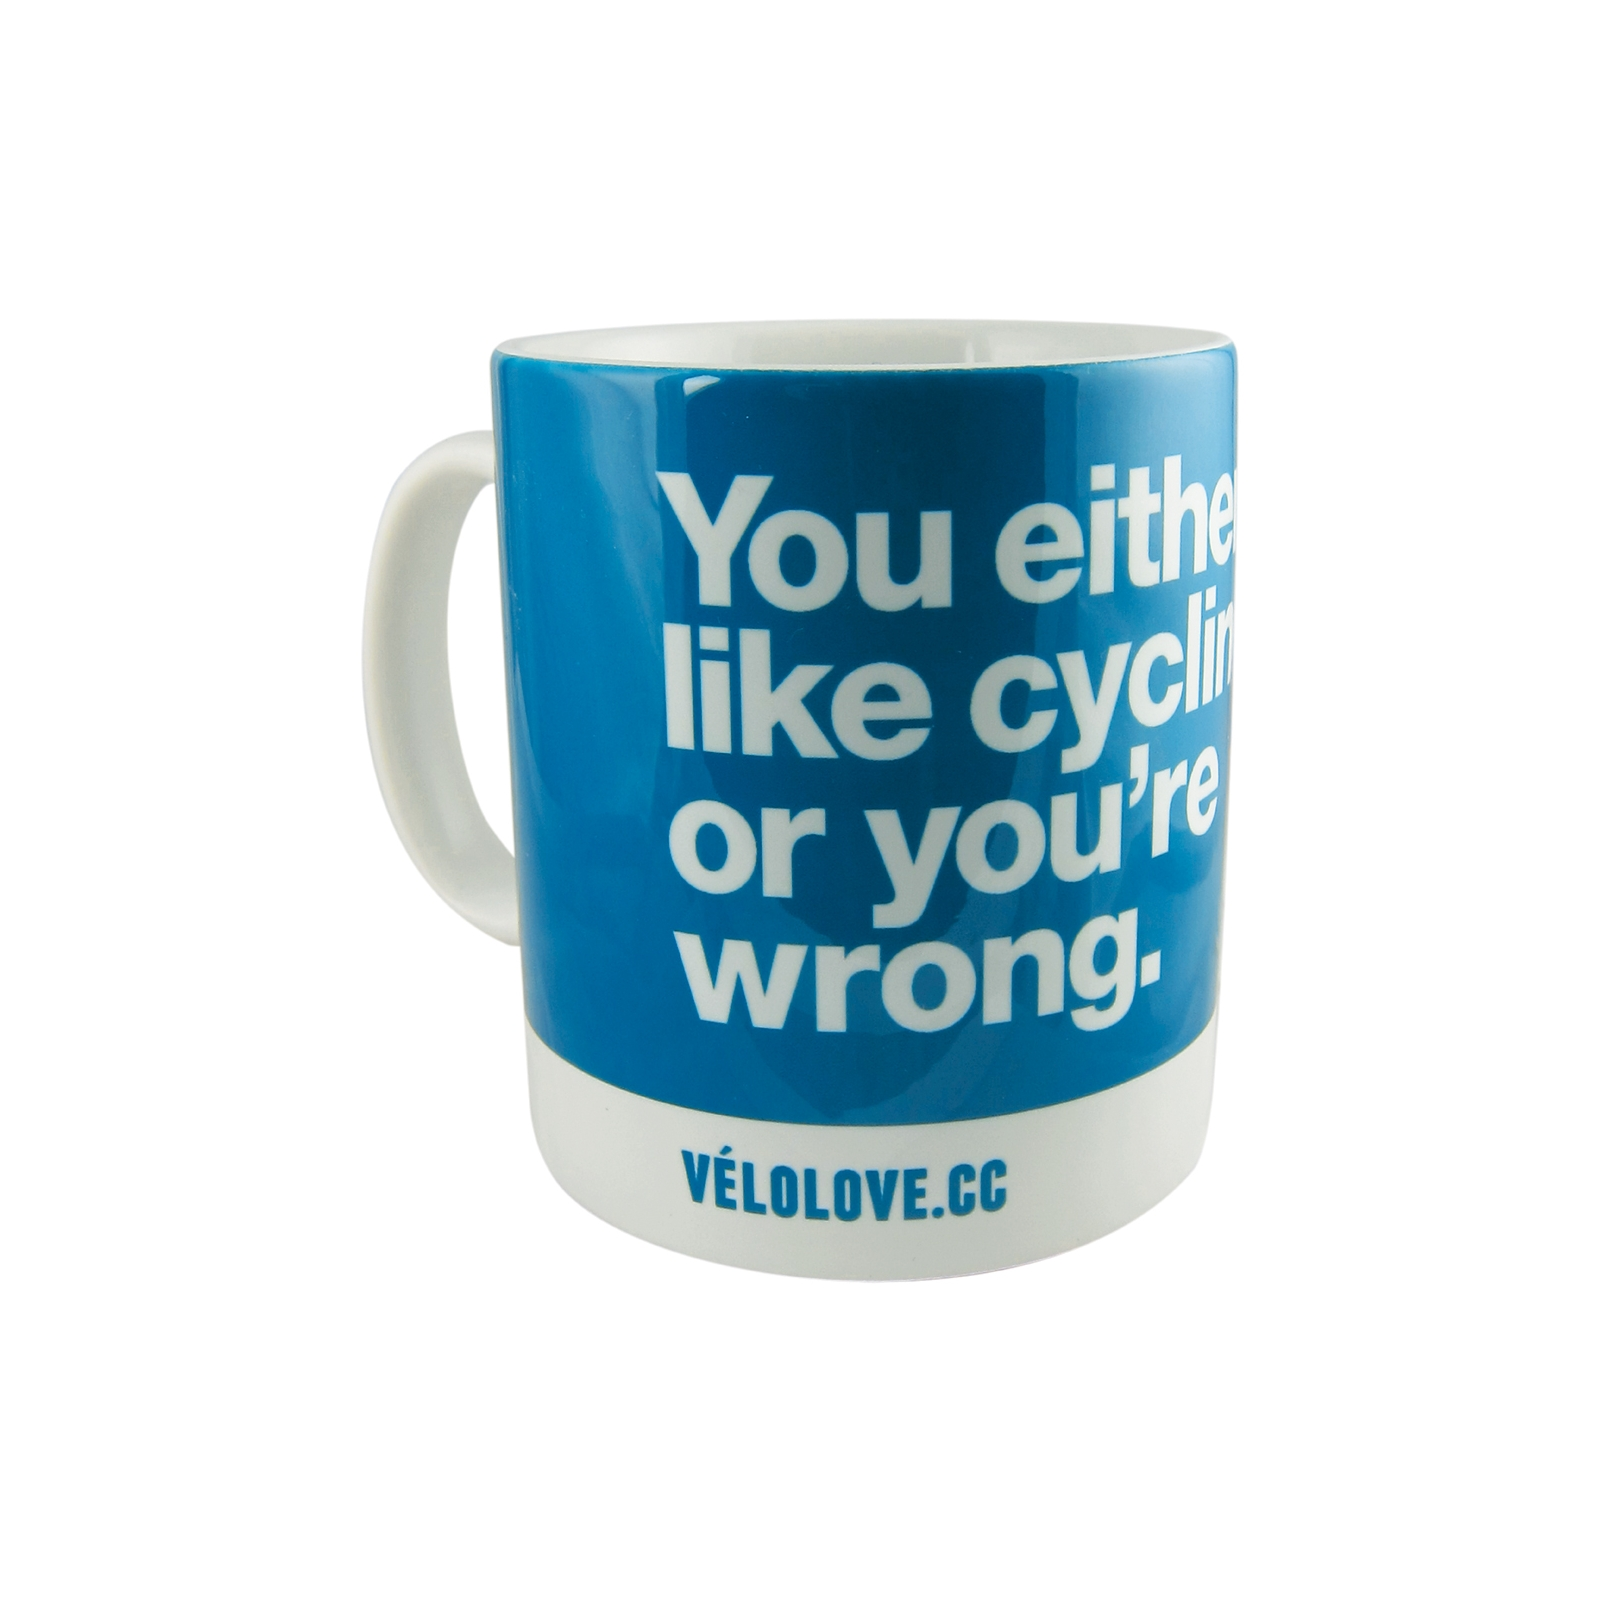 Velolove You either like cycling or you're wrong Mug | Multimedier > Tilbehør